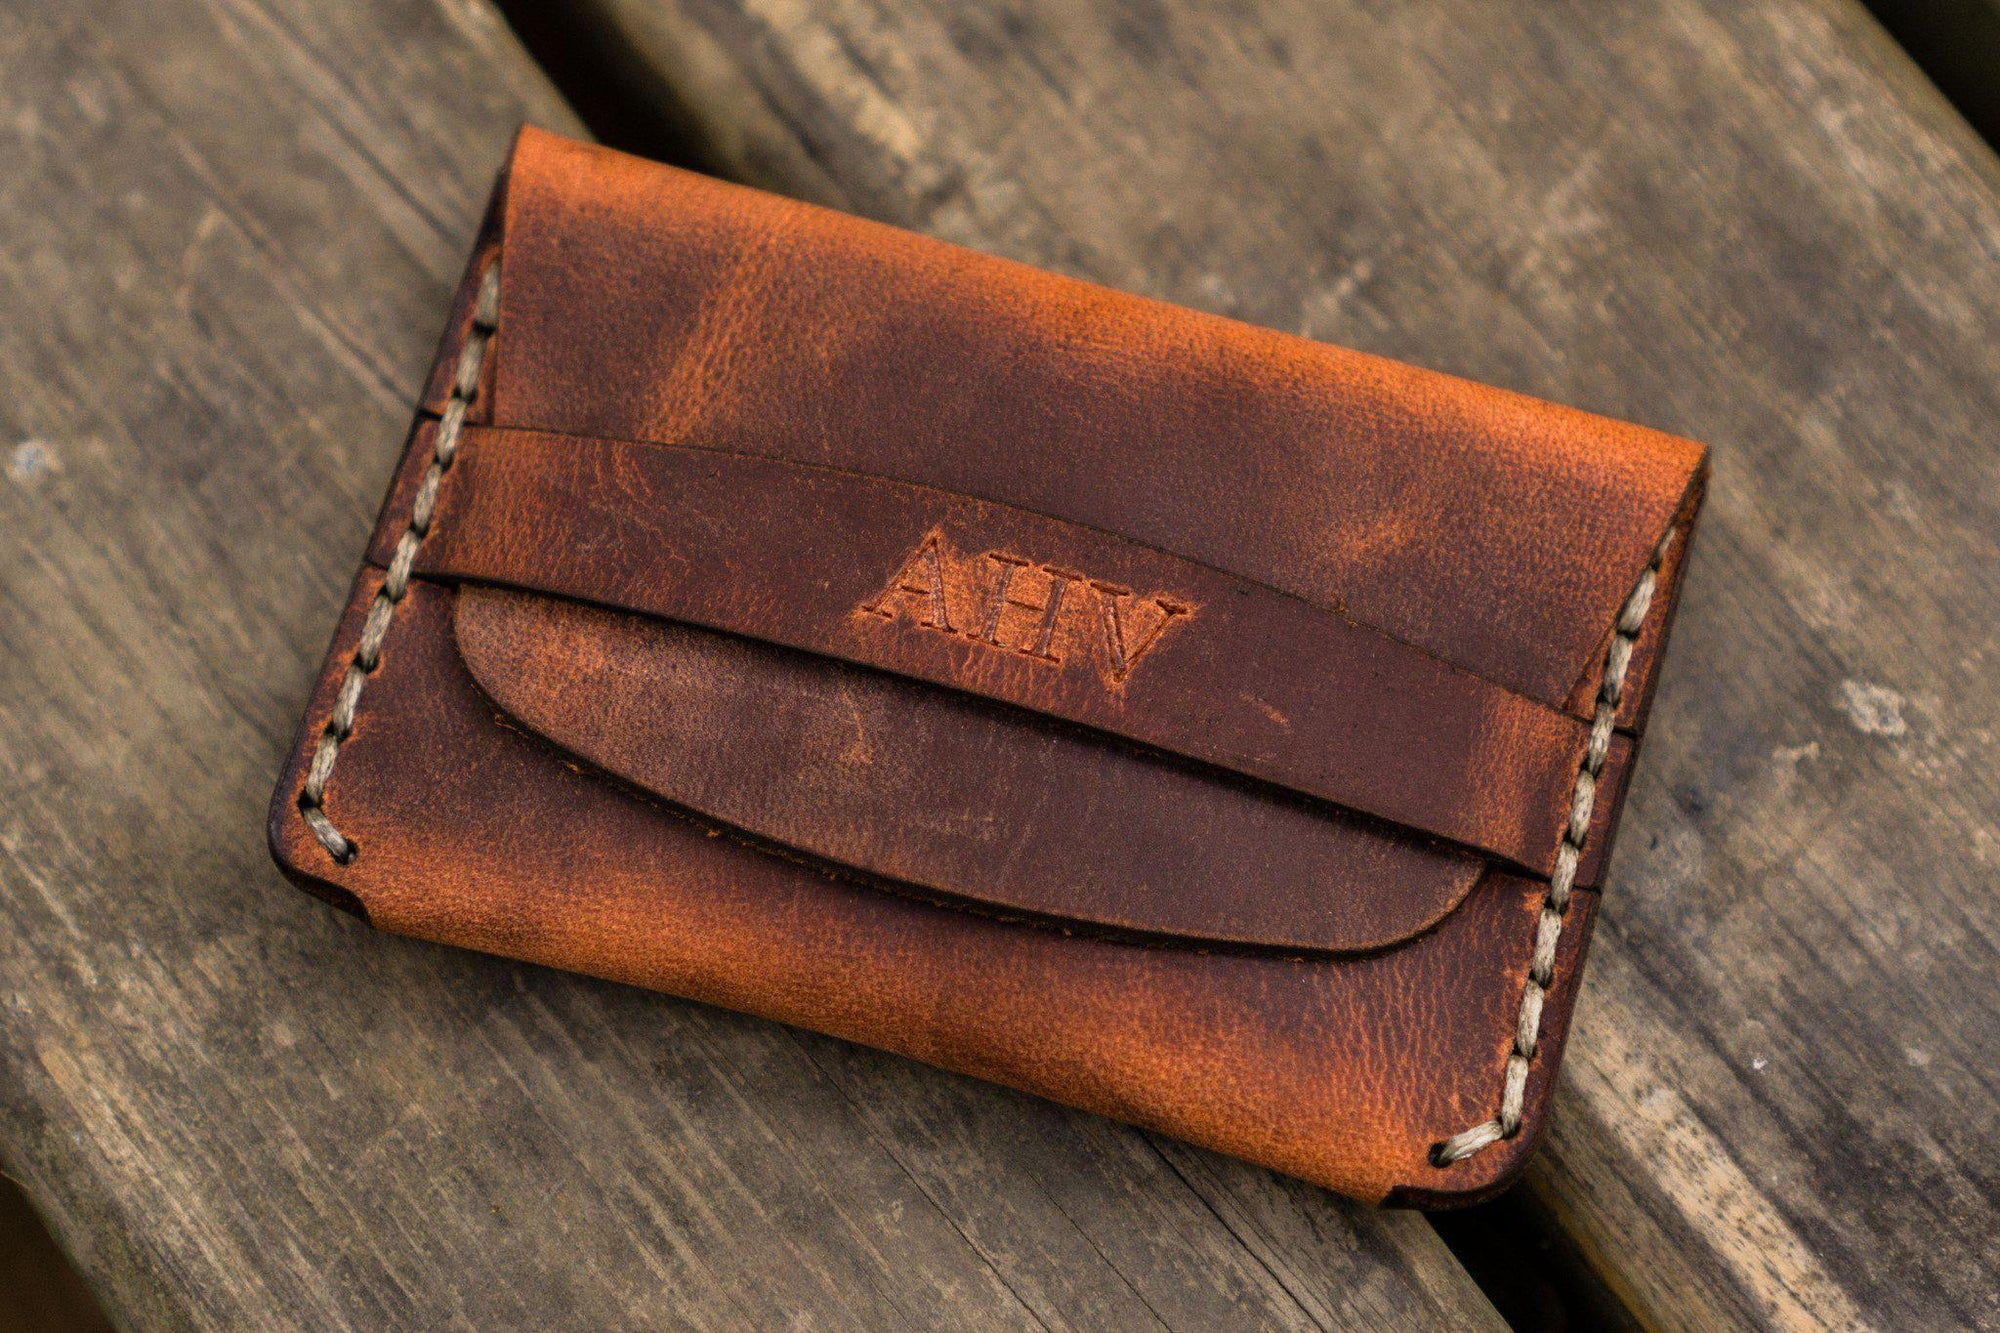 No.36 Personalized Basic Flap Handmade Leather Wallet - Crazy Horse Orange-Galen Leather